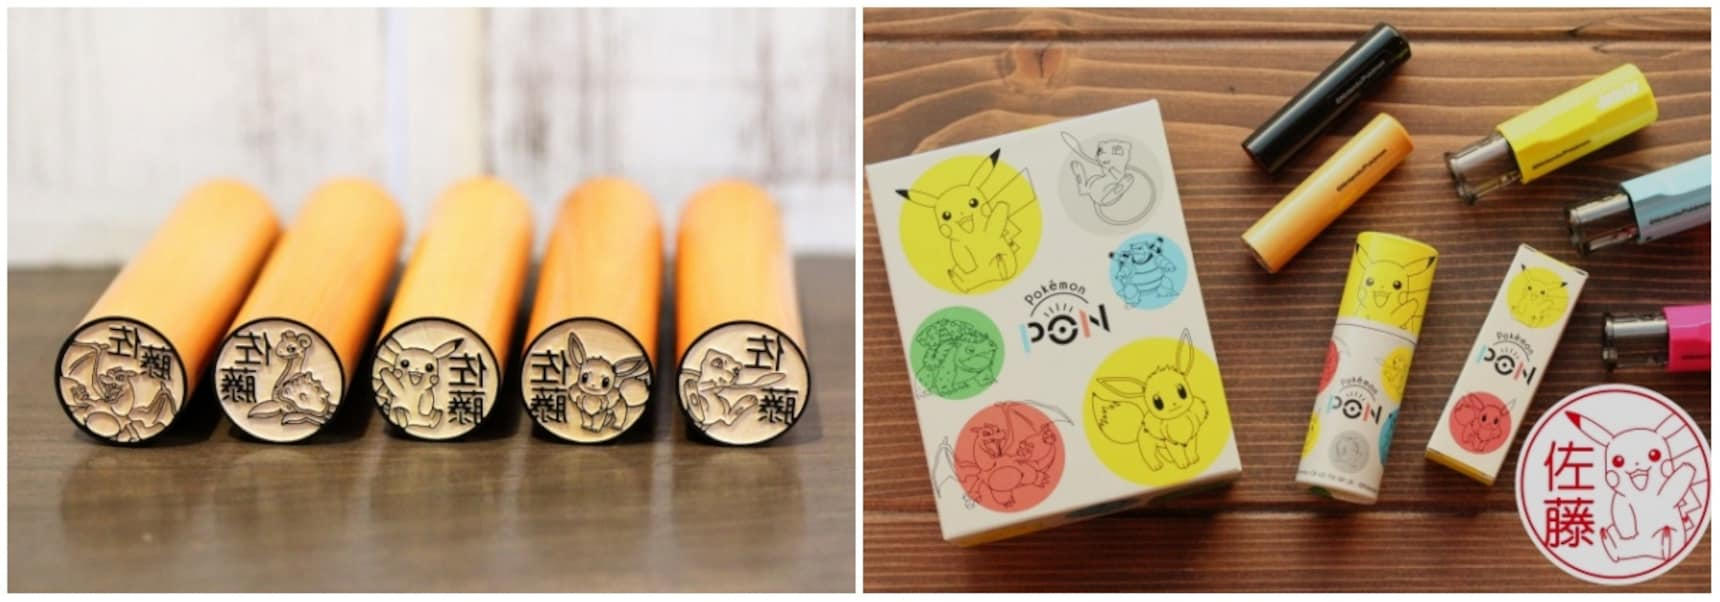 Pokémon Personal Seals: Gotta Stamp 'Em All!